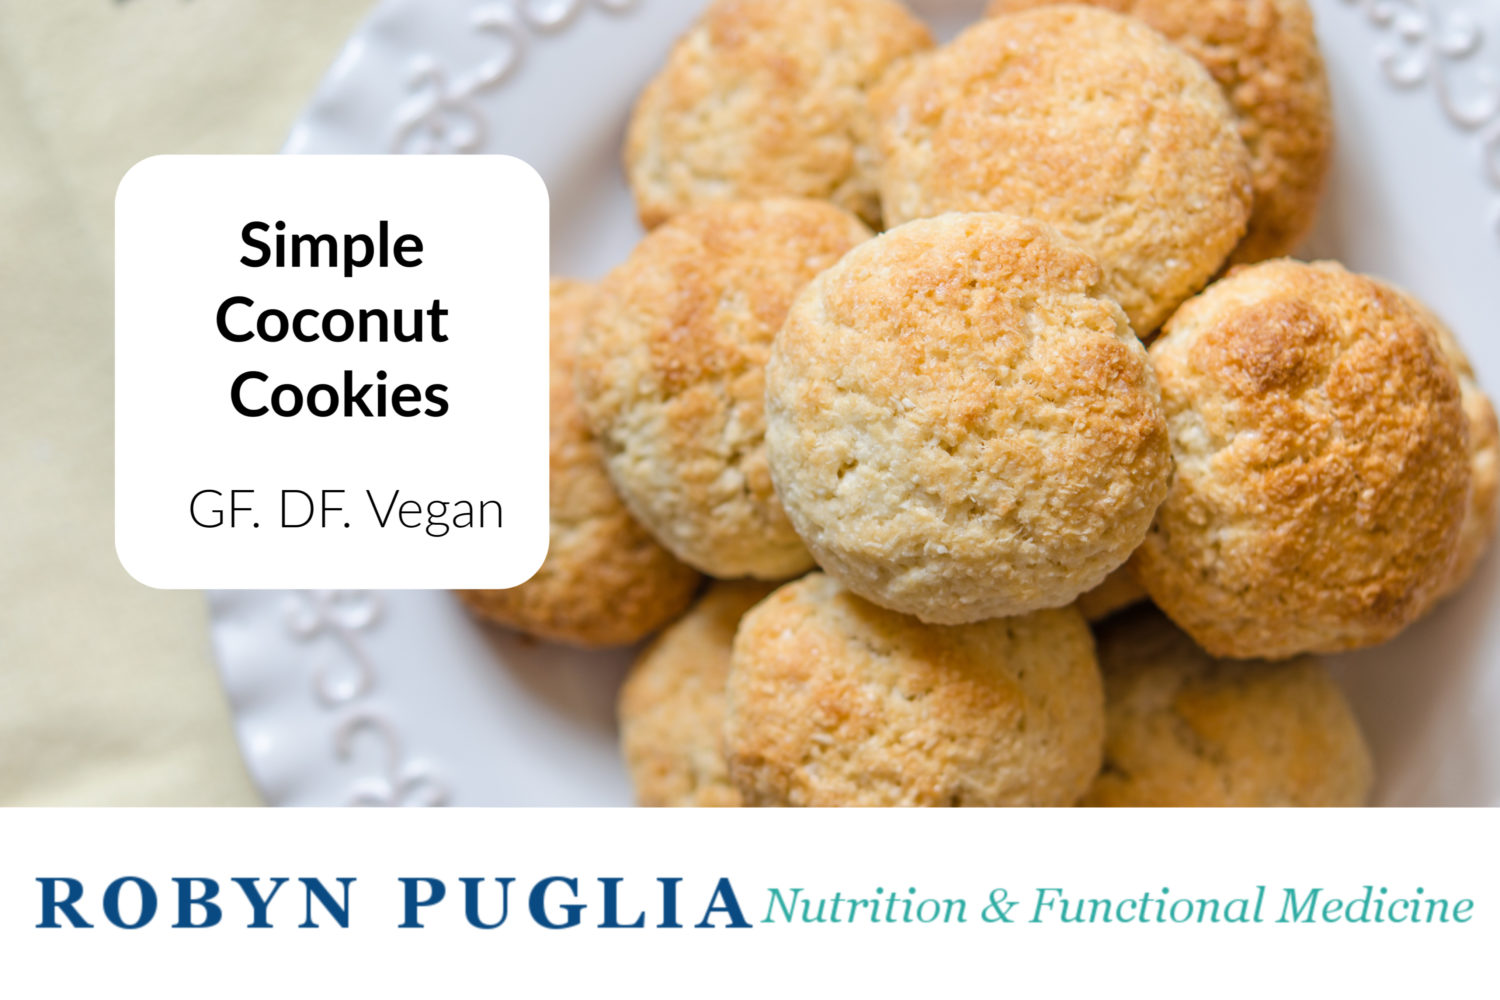 Simple Coconut Cookies